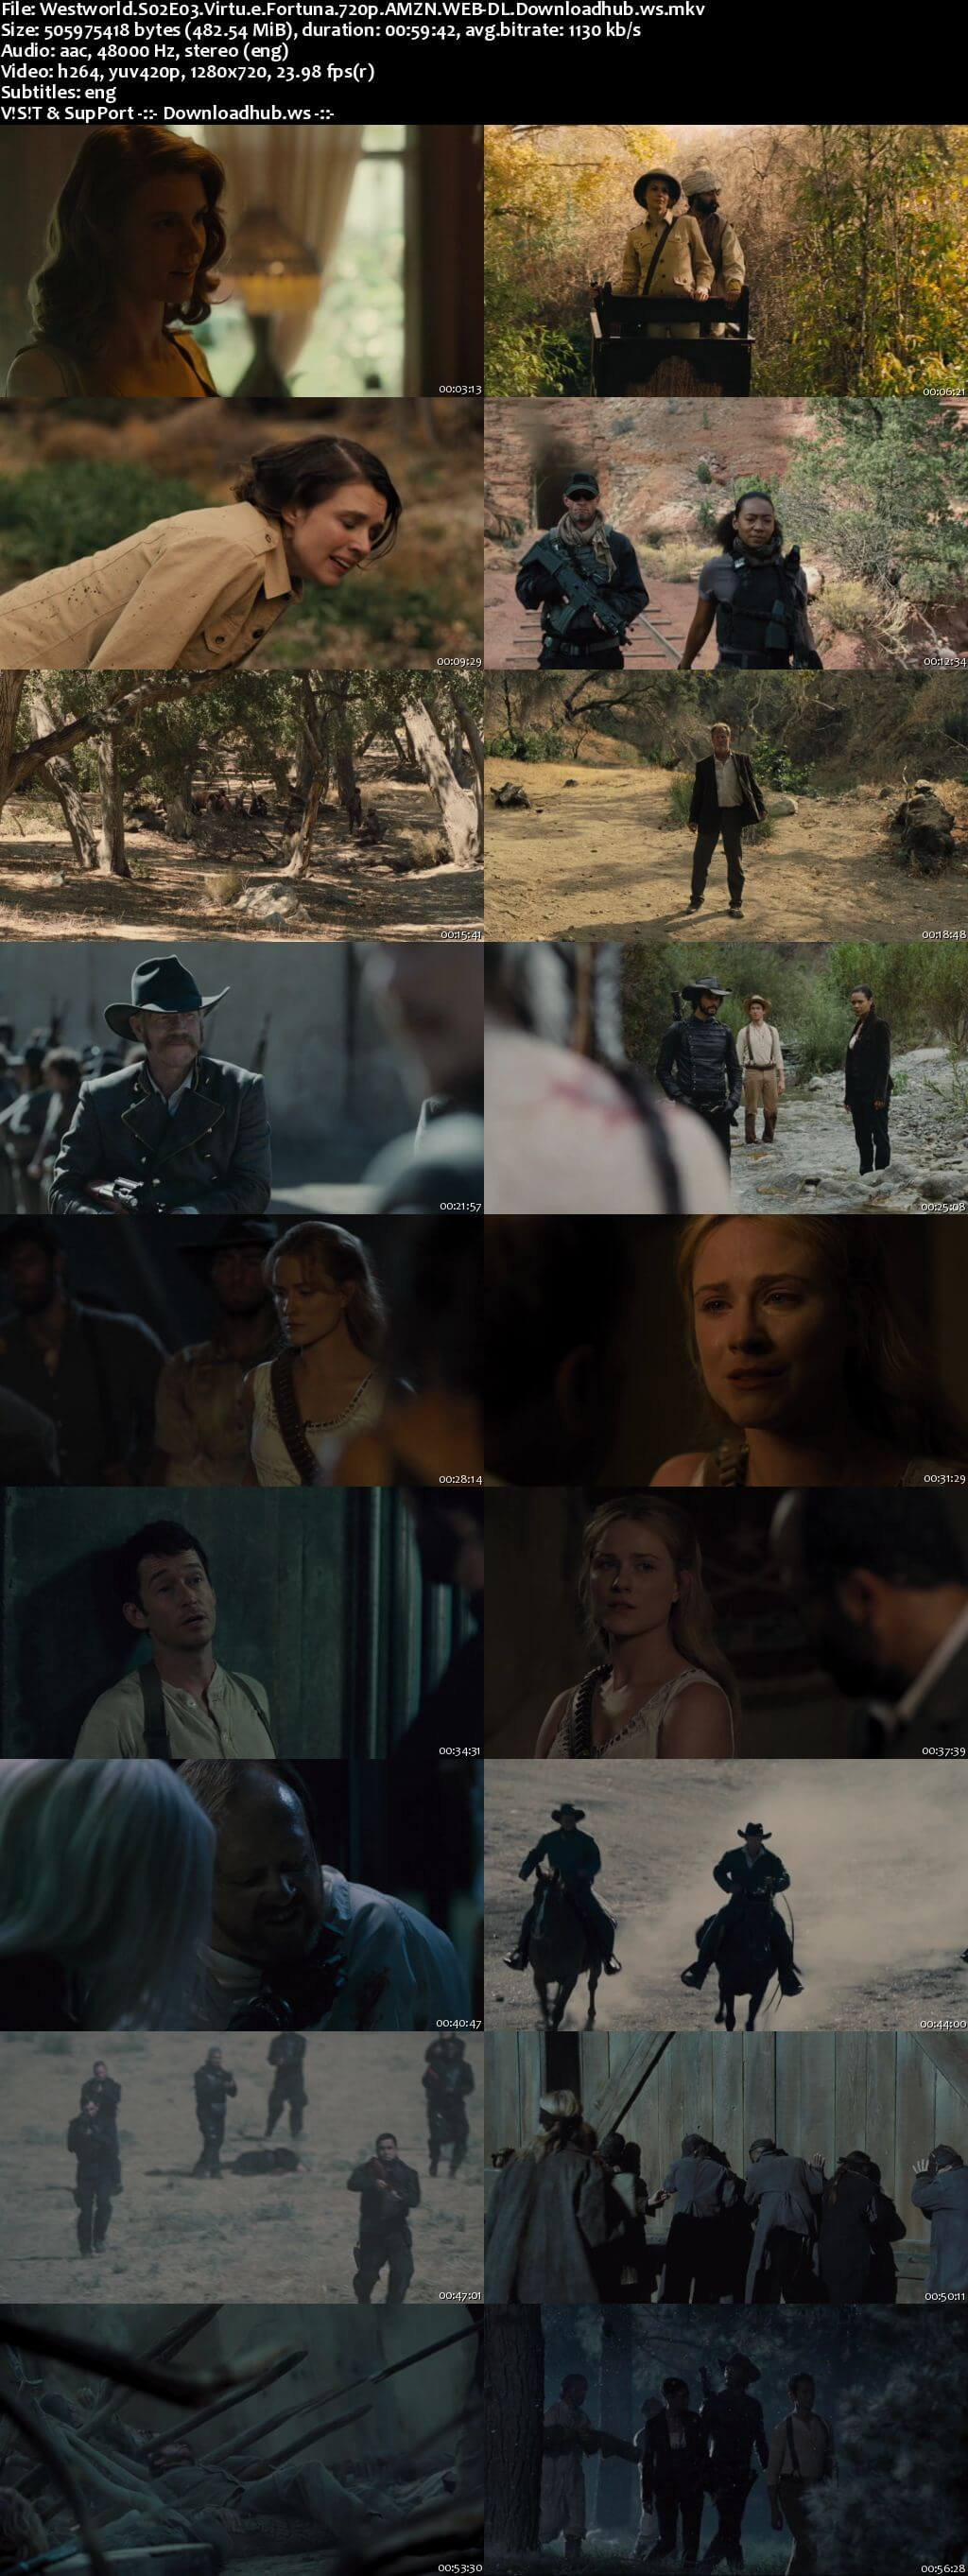 Westworld S02E03 480MB WEB-DL 720p x264